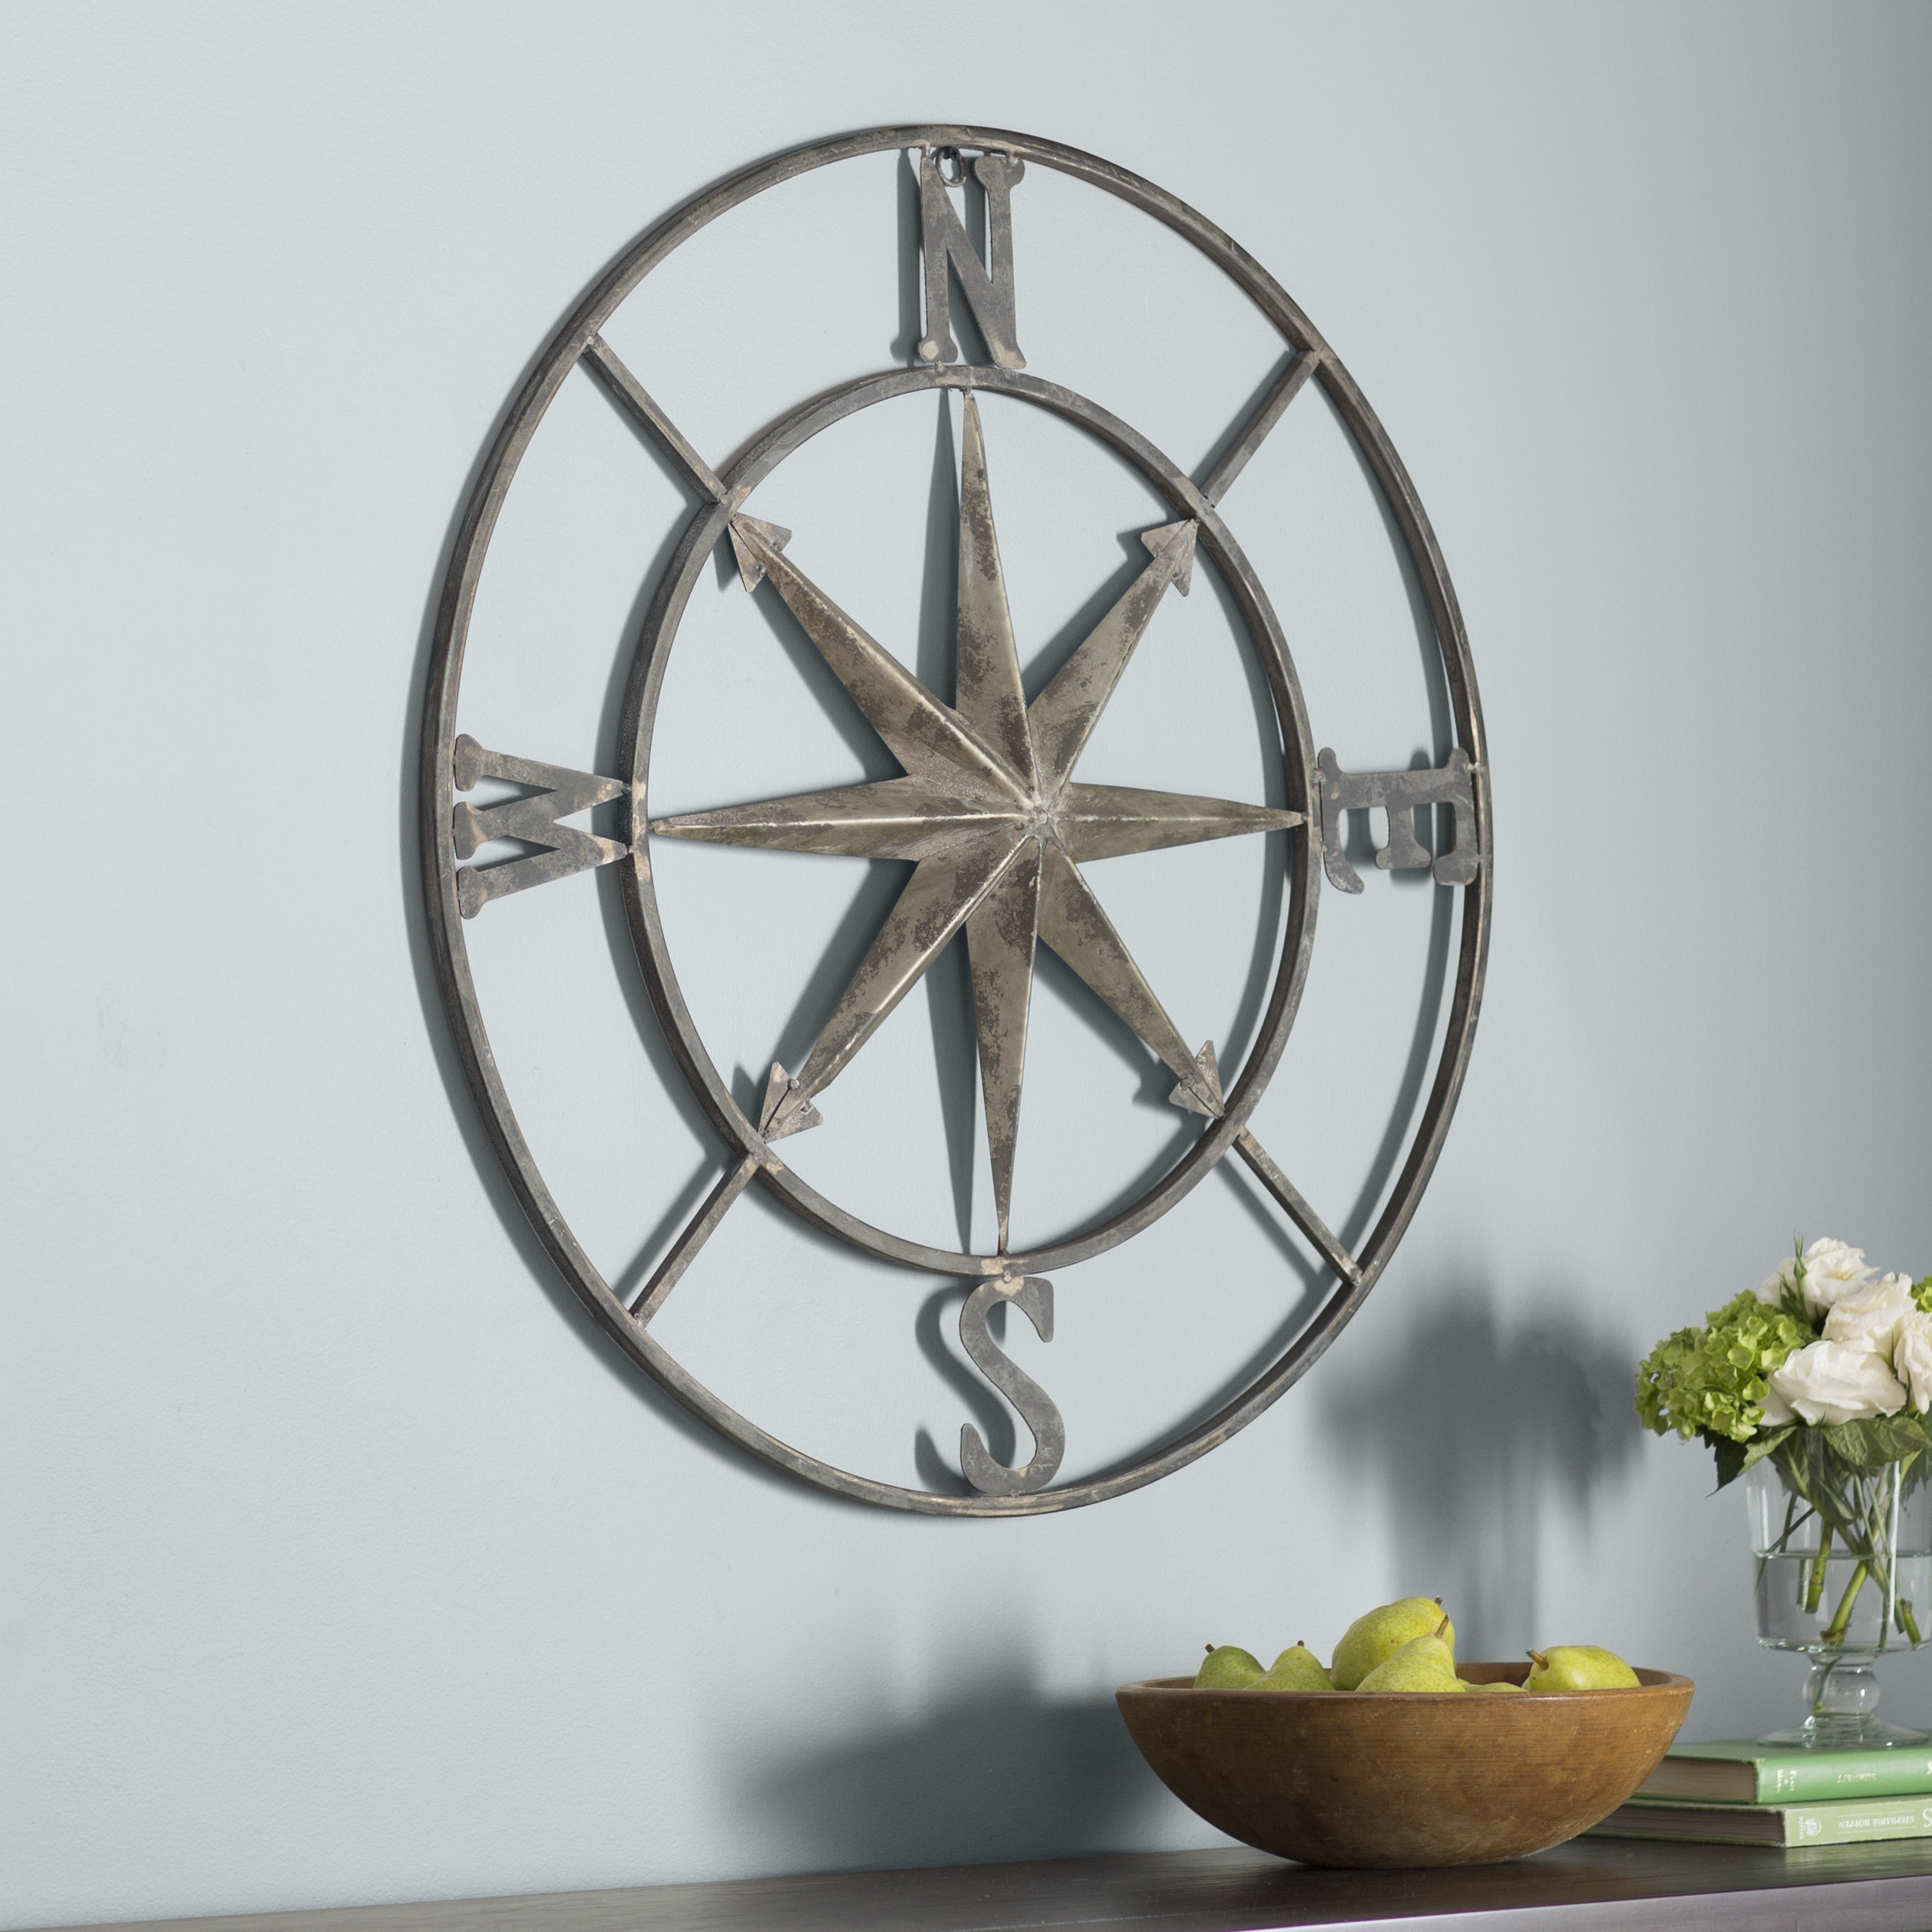 Wayfair Regarding Round Compass Wall Decor (View 2 of 20)